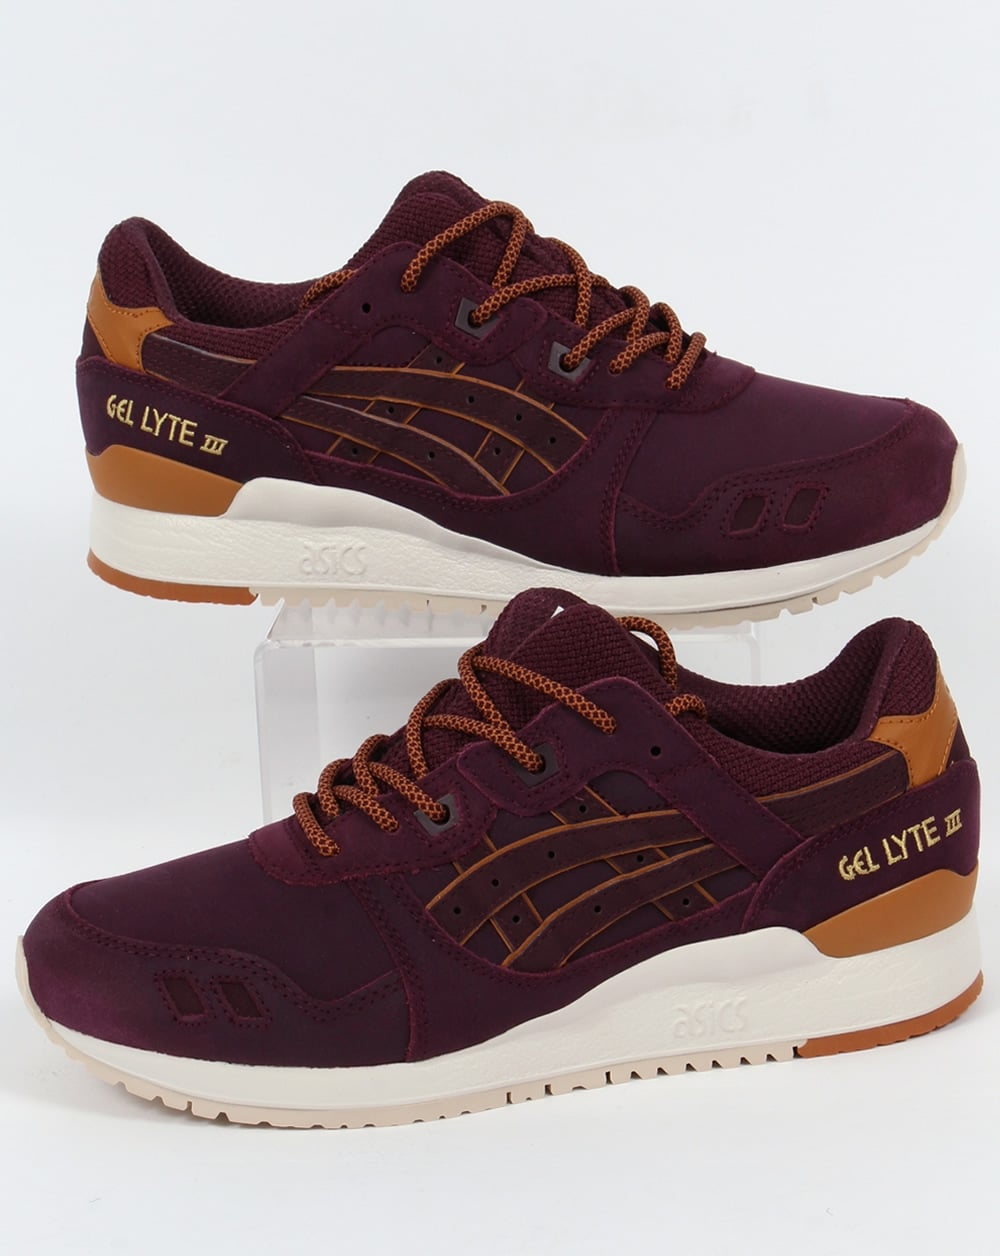 100% authentic 81b68 f3419 Asics Gel Lyte III Trainers Rioja Red